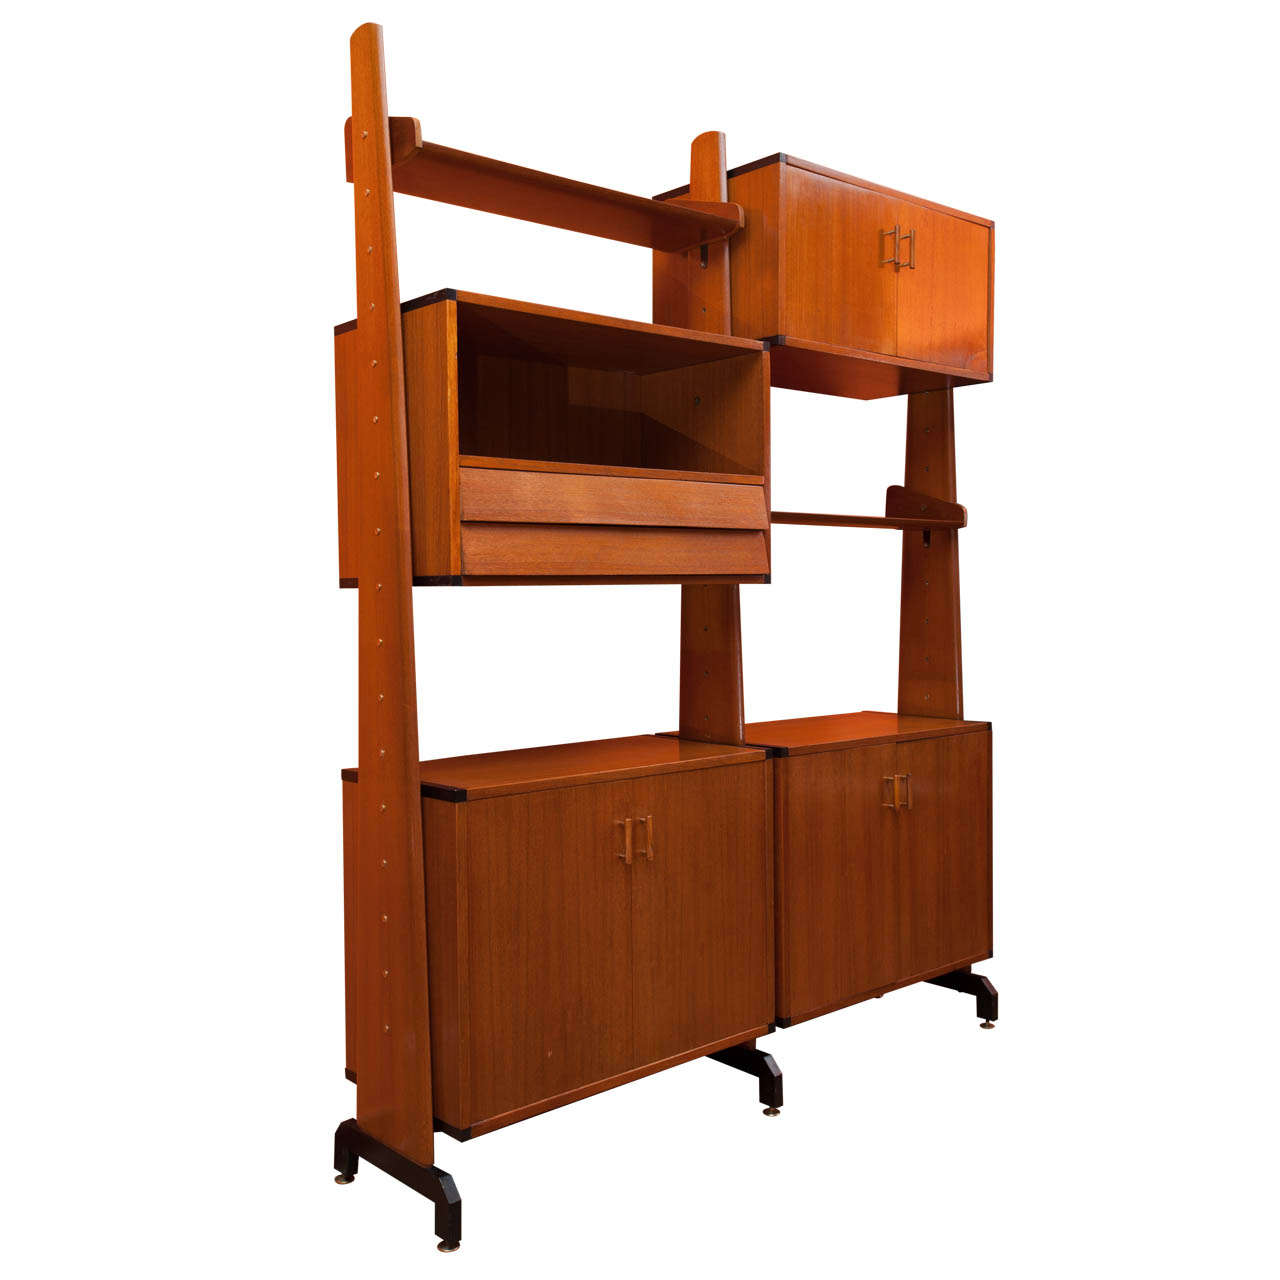 1960 39 S Italian Adjustable Wooden Bookcase For Sale At 1stdibs